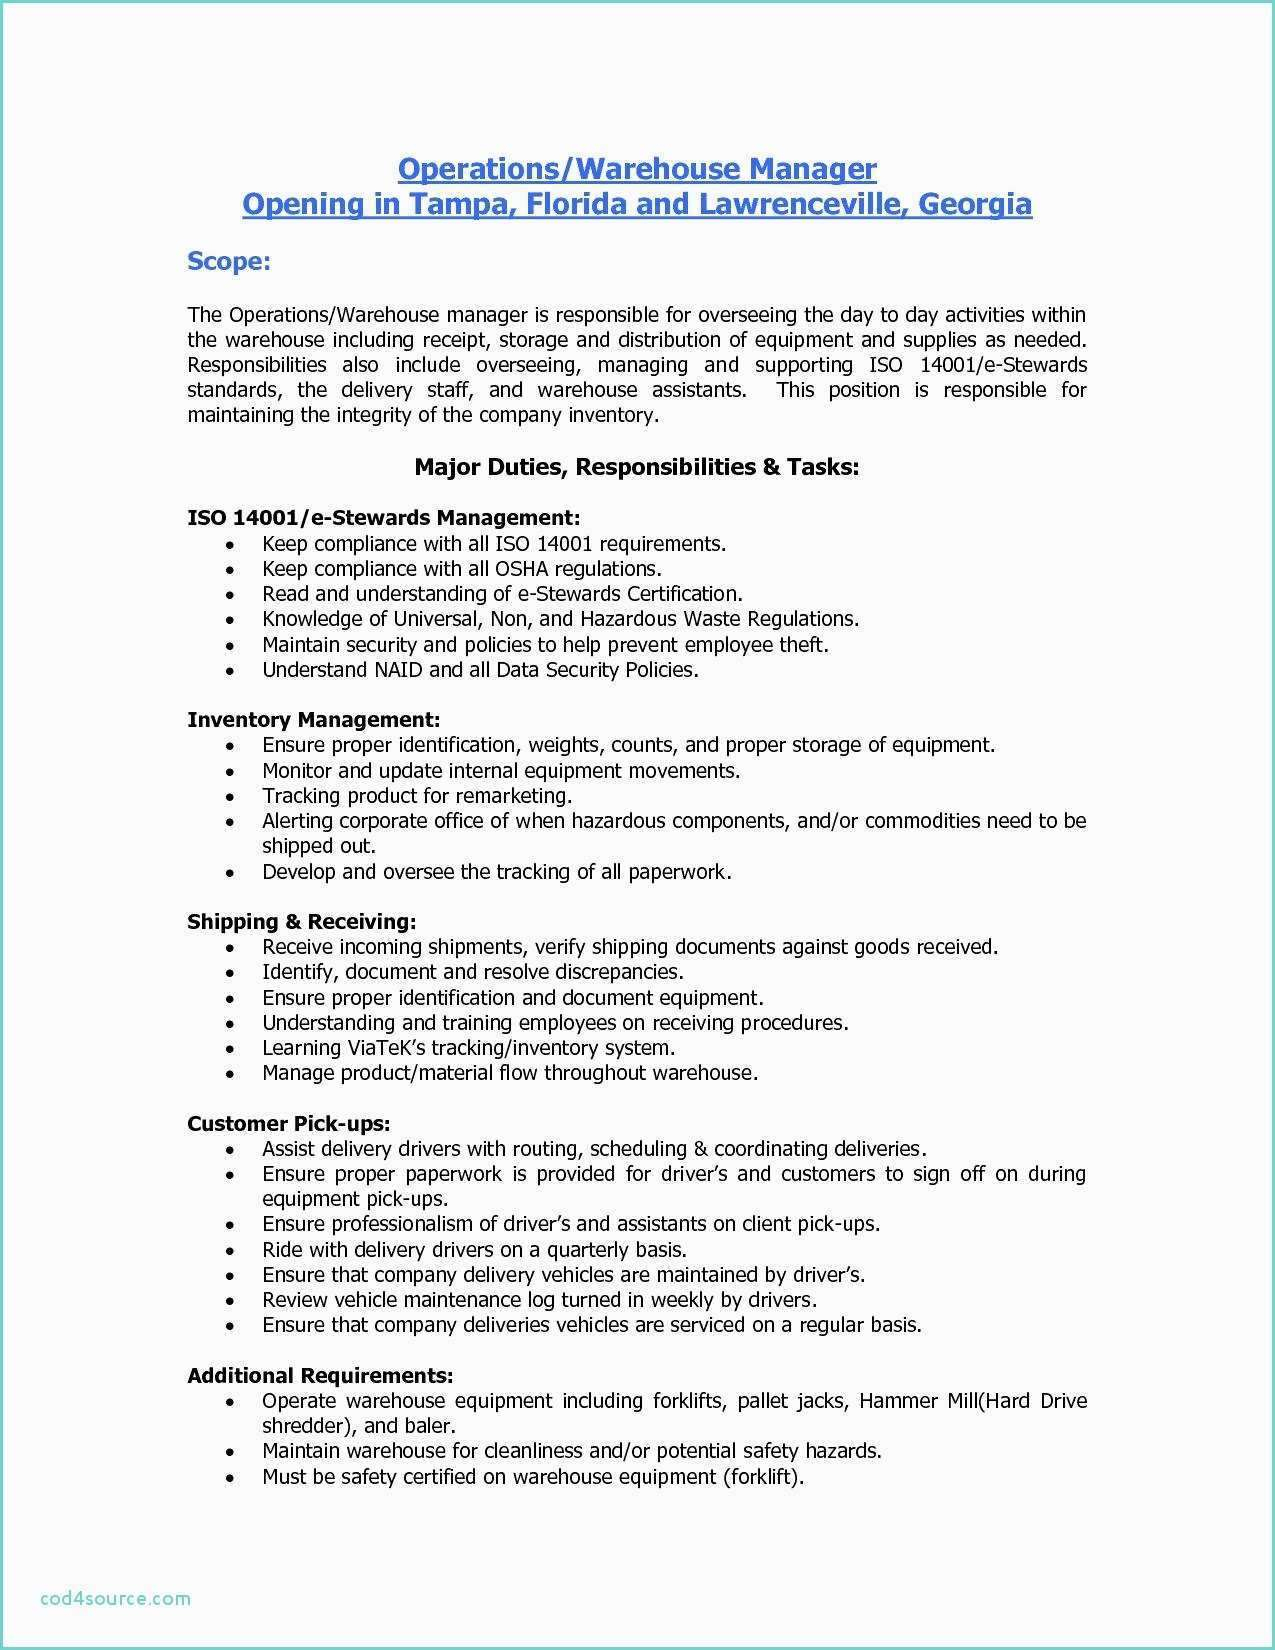 Business Rules Template Word - Caquetapositivo Throughout Business Rules Template Word